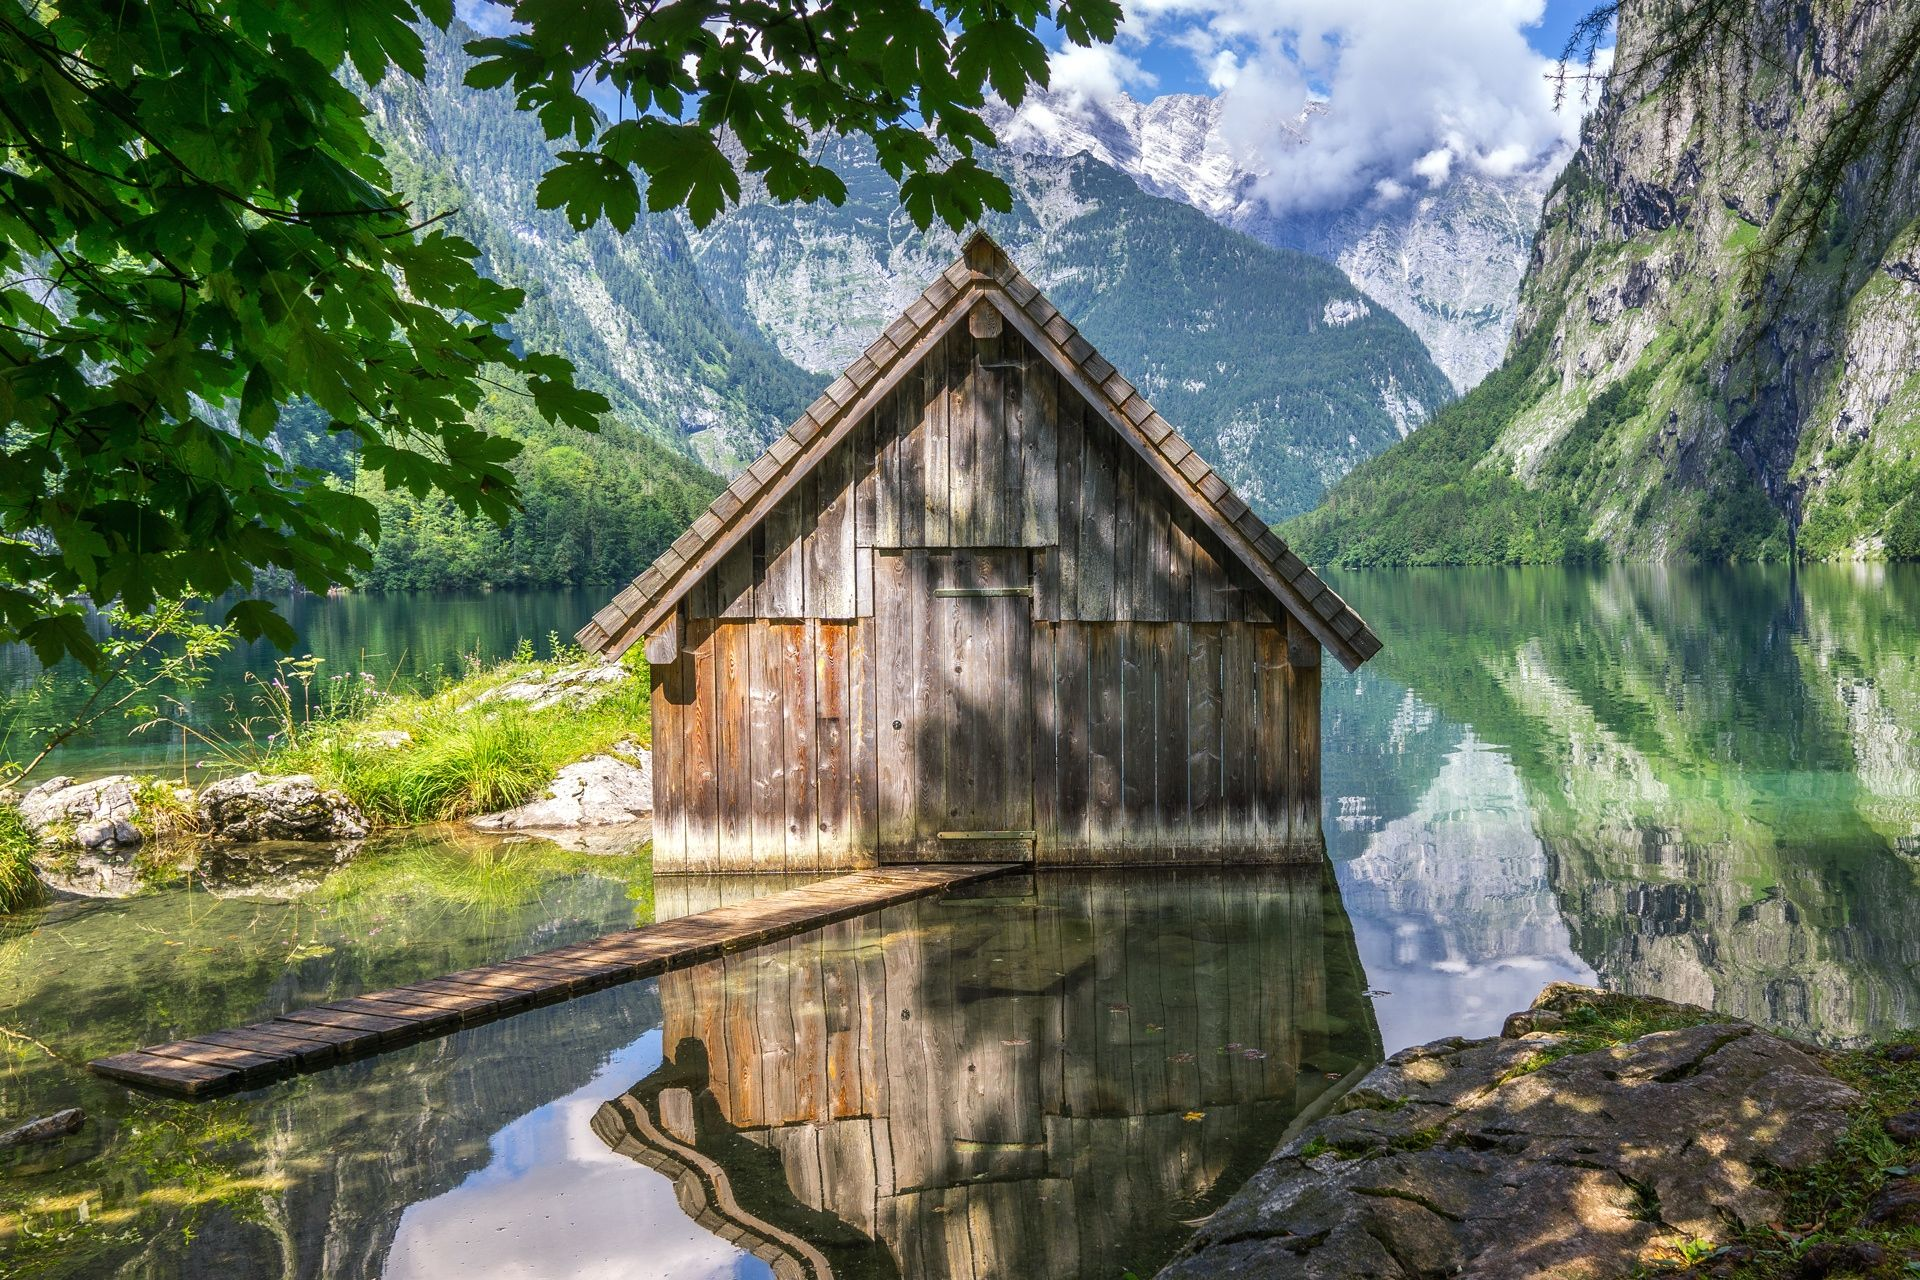 Lake Obersee #2 - Lake Obersee / Bavaria